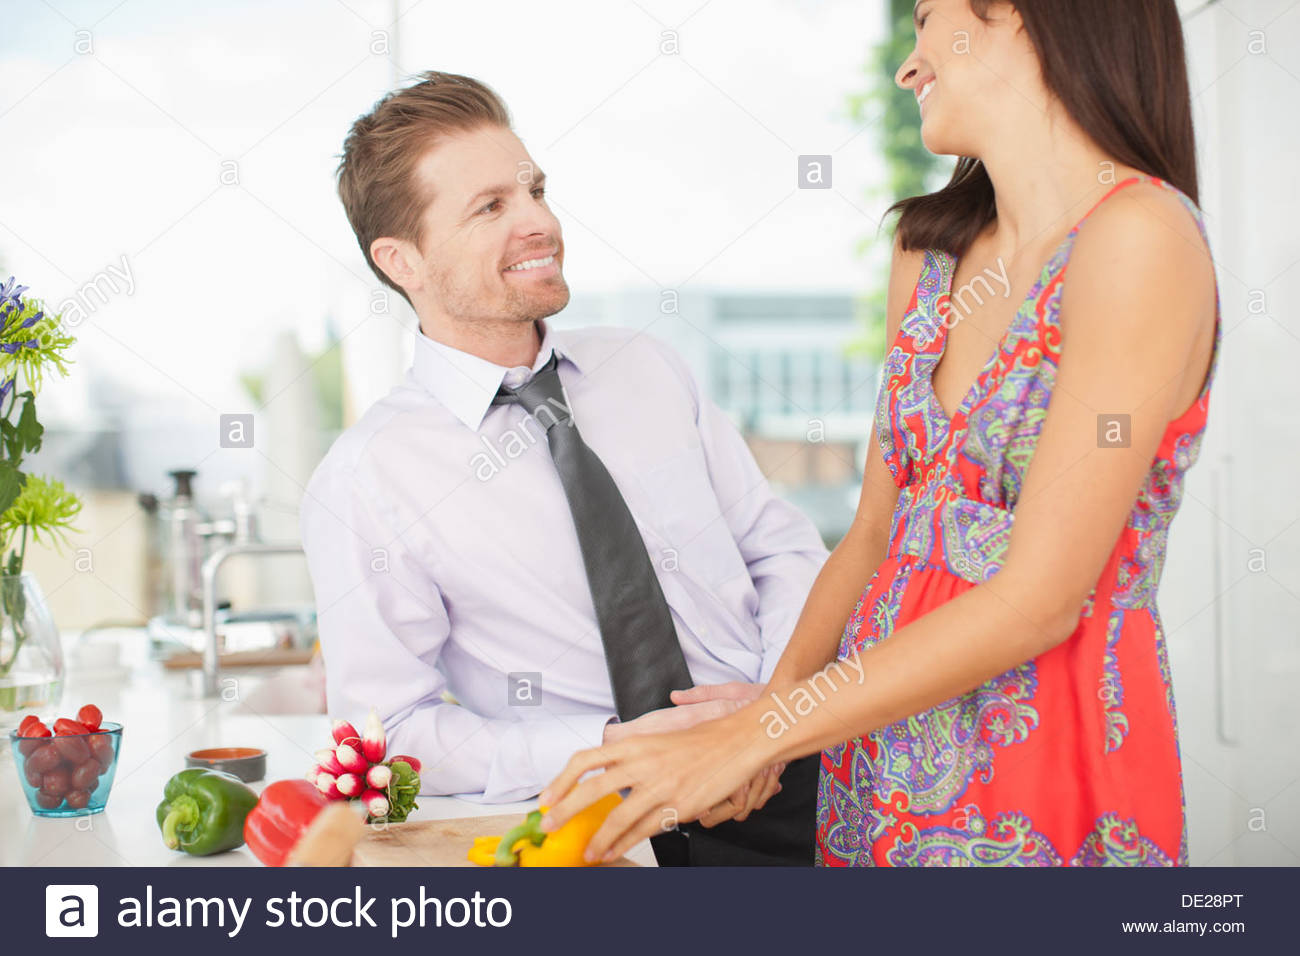 Husband talking to wife while she cuts vegetables in kitchen - Stock Image